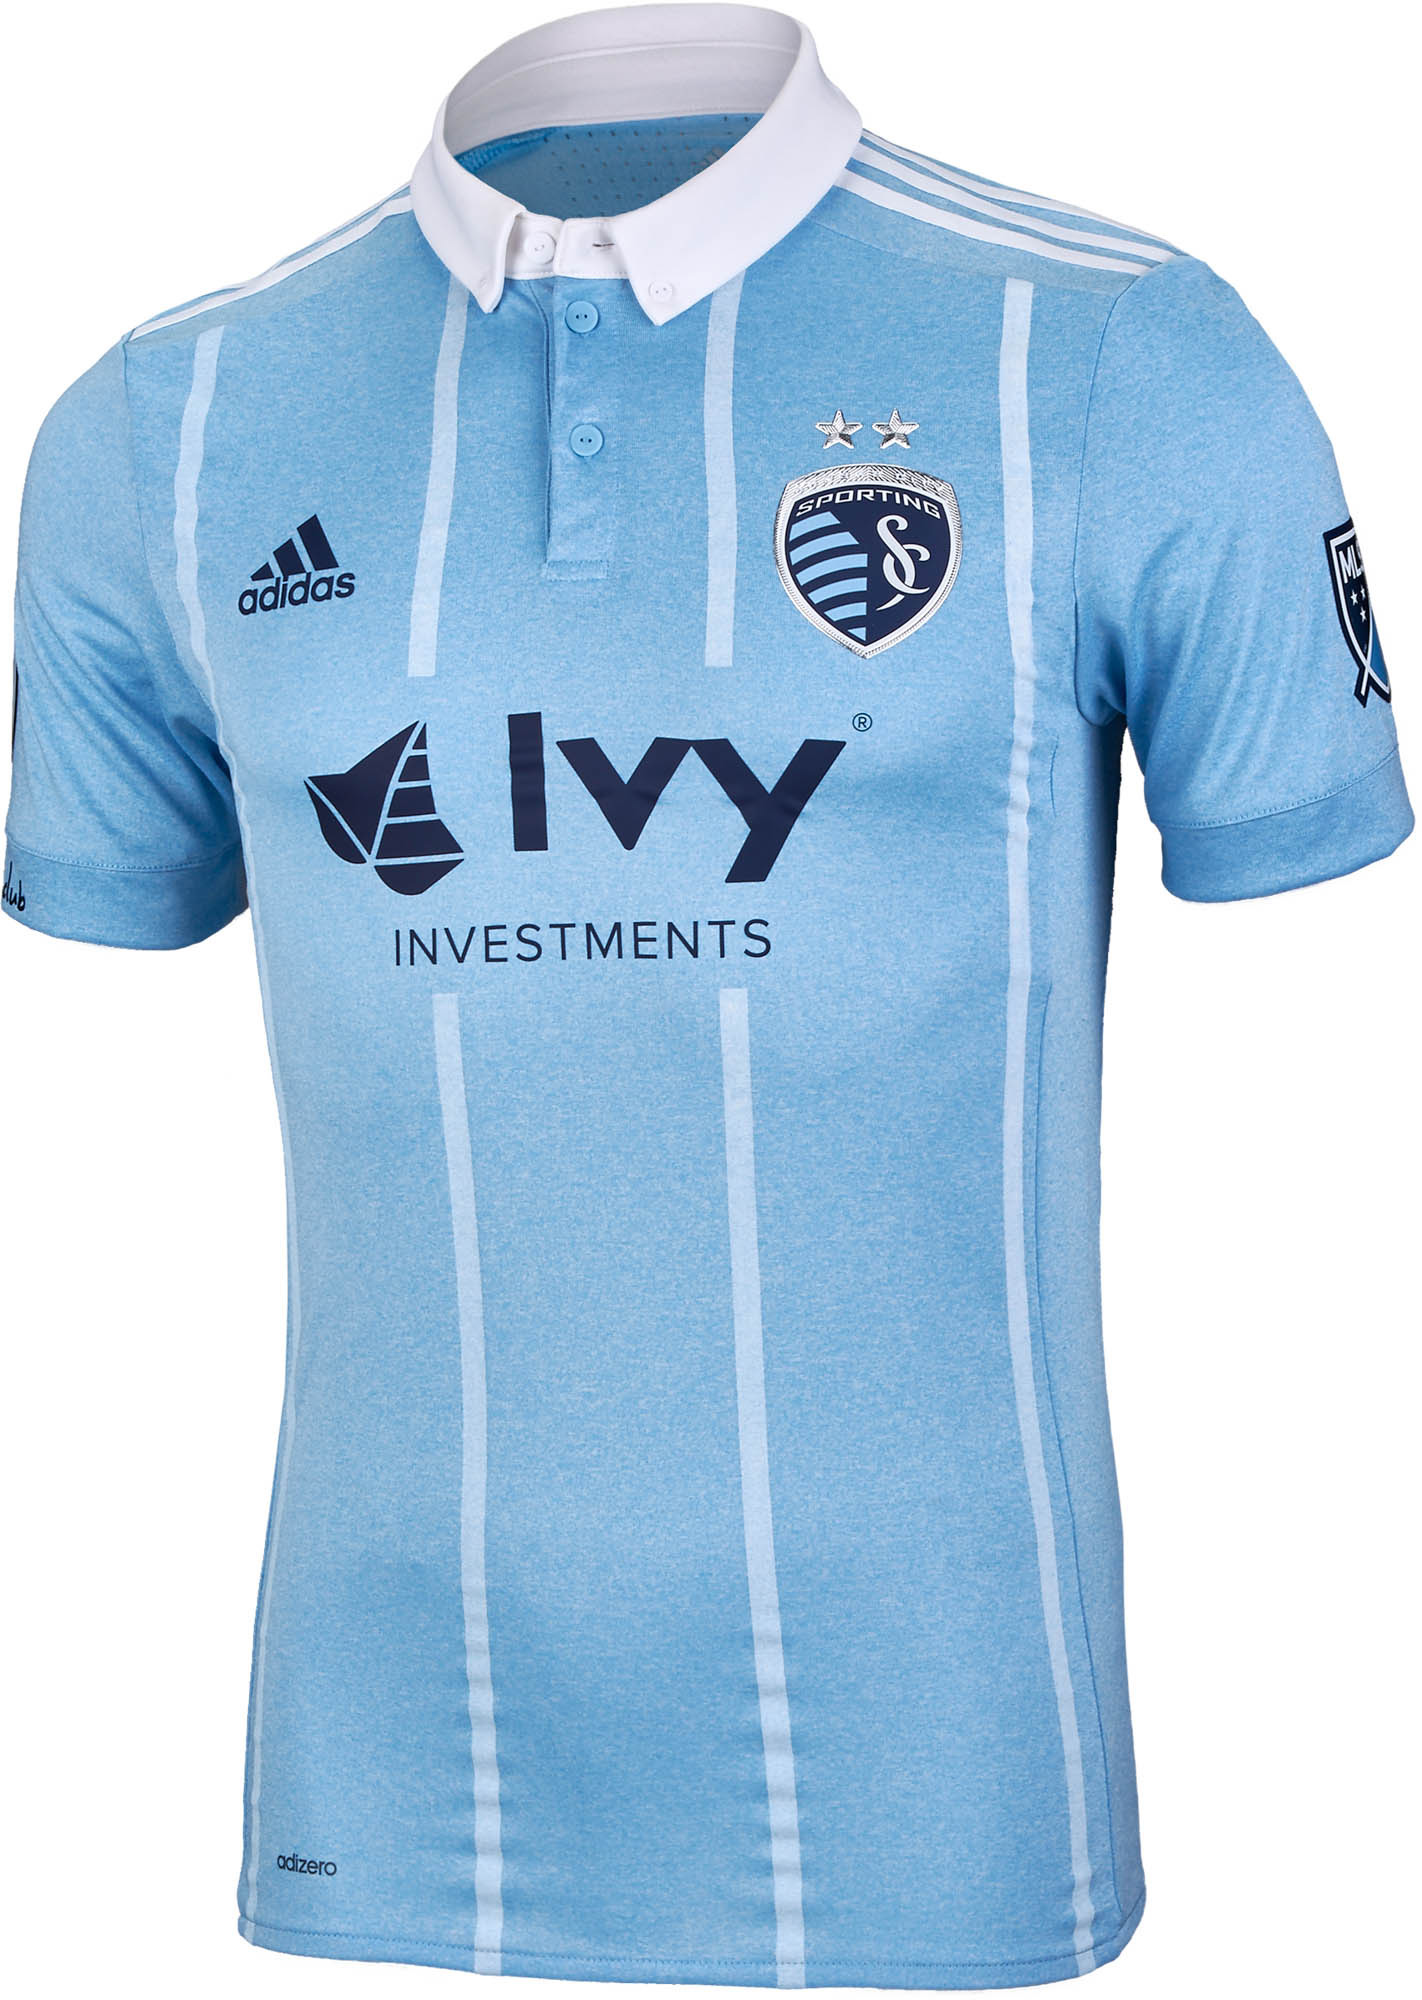 80a726ca4 adidas Sporting KC Authentic Home Jersey 2017-18